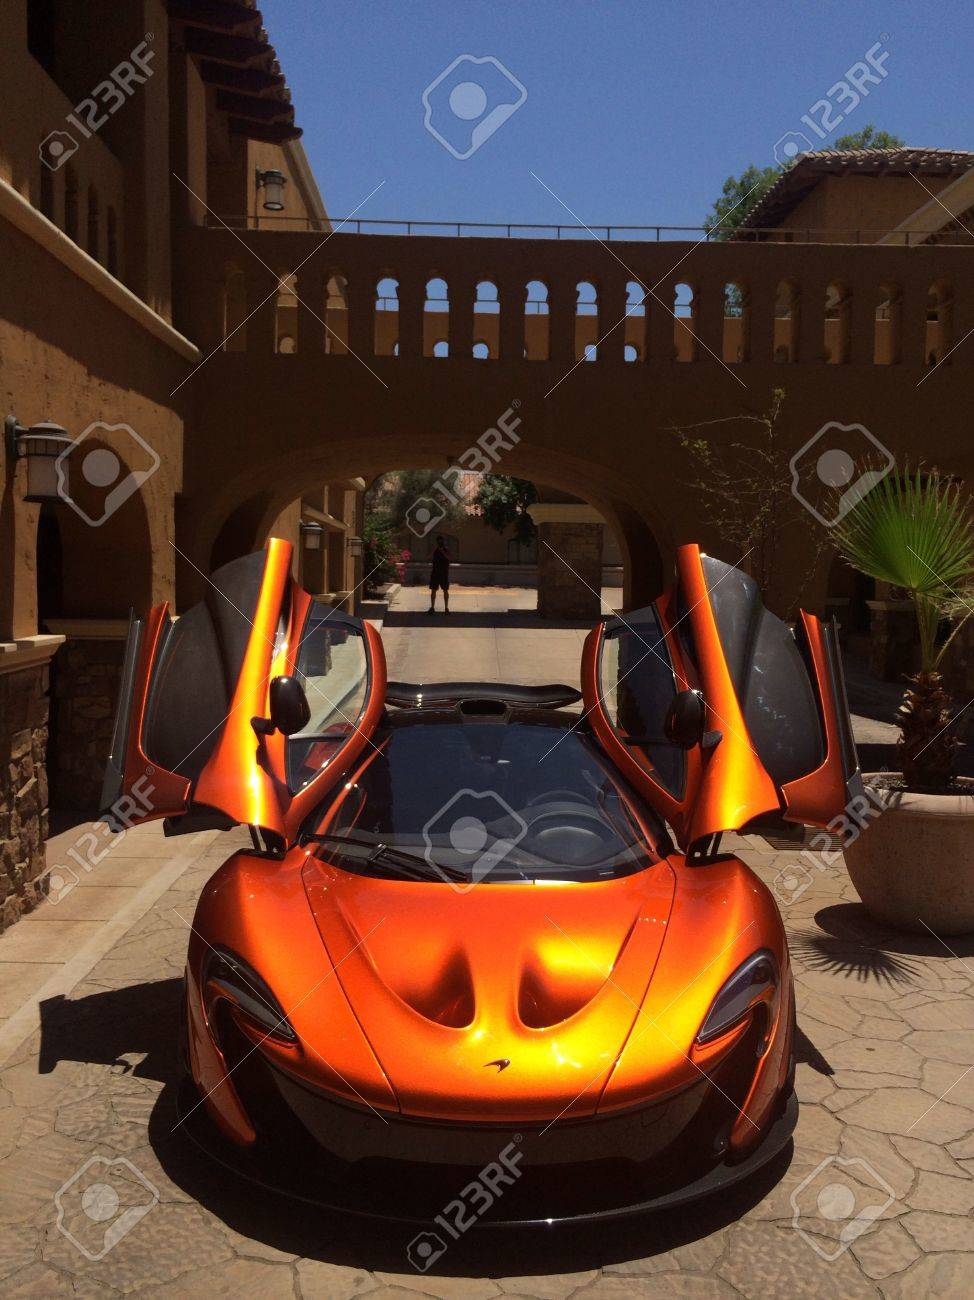 Mclaren P1 Orange >> Mclaren P1 Spreading It S Wings As The Sun Reflects Off The